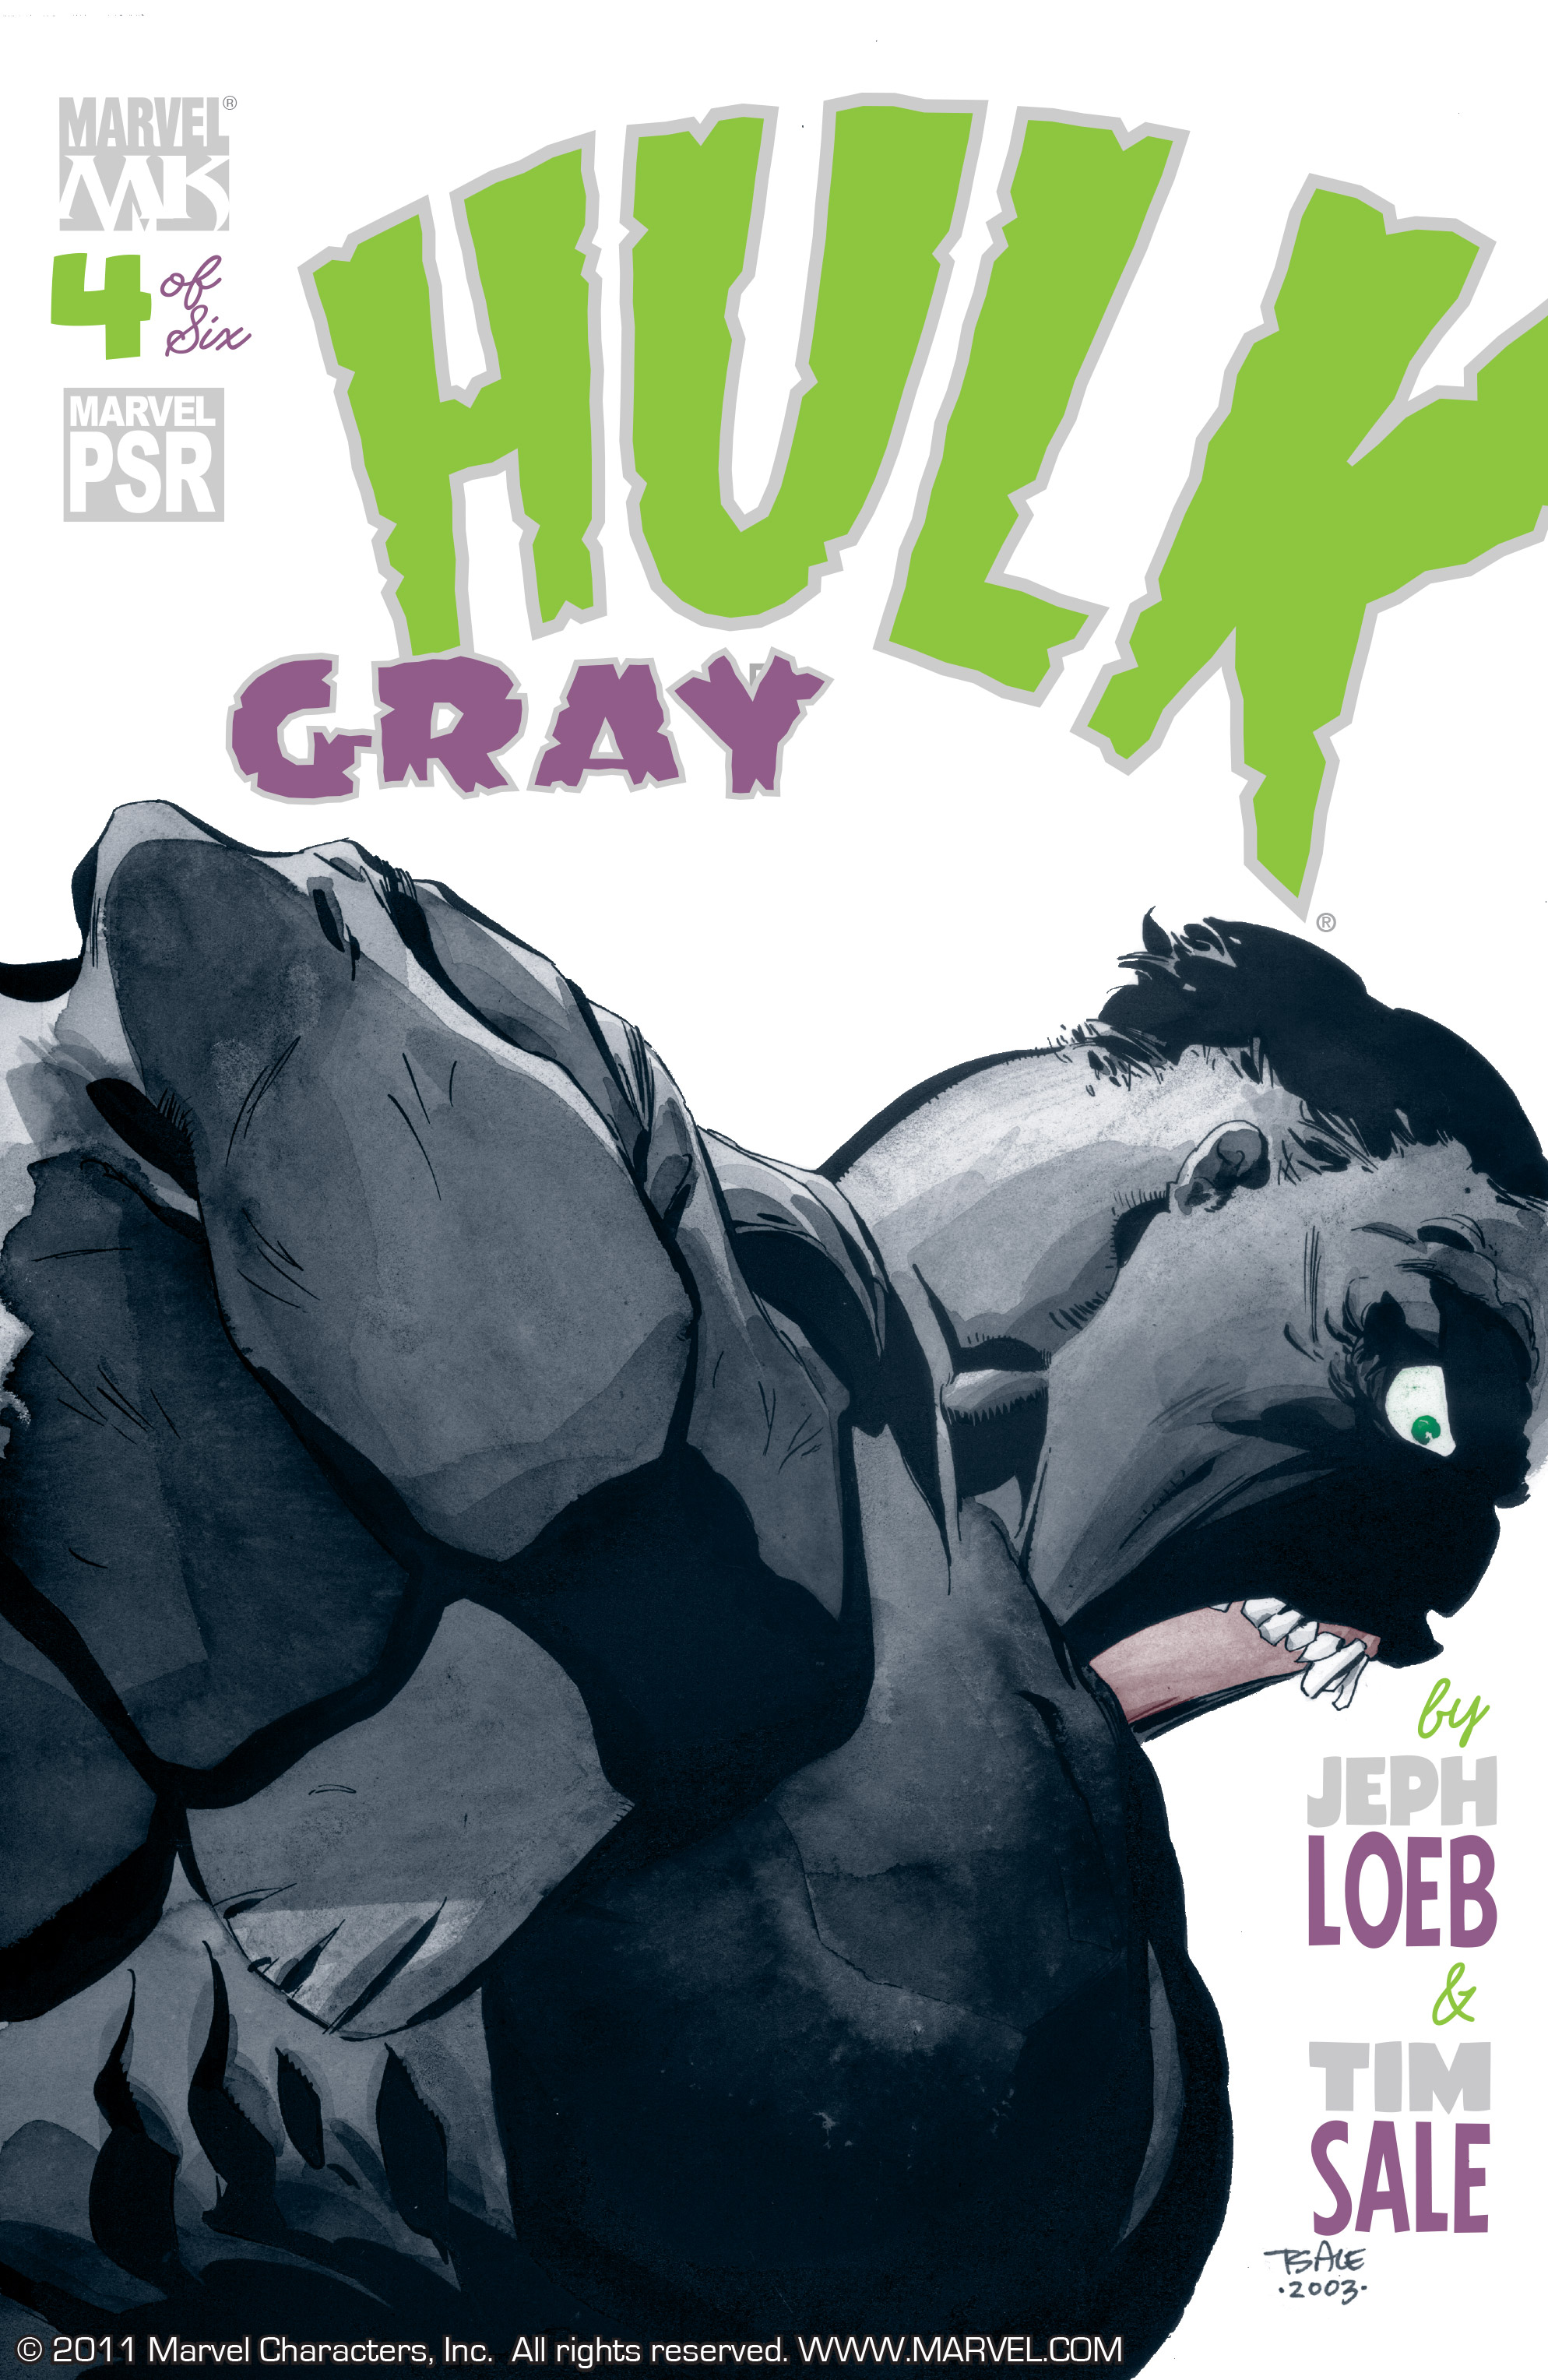 Read online Hulk: Gray comic -  Issue #4 - 1